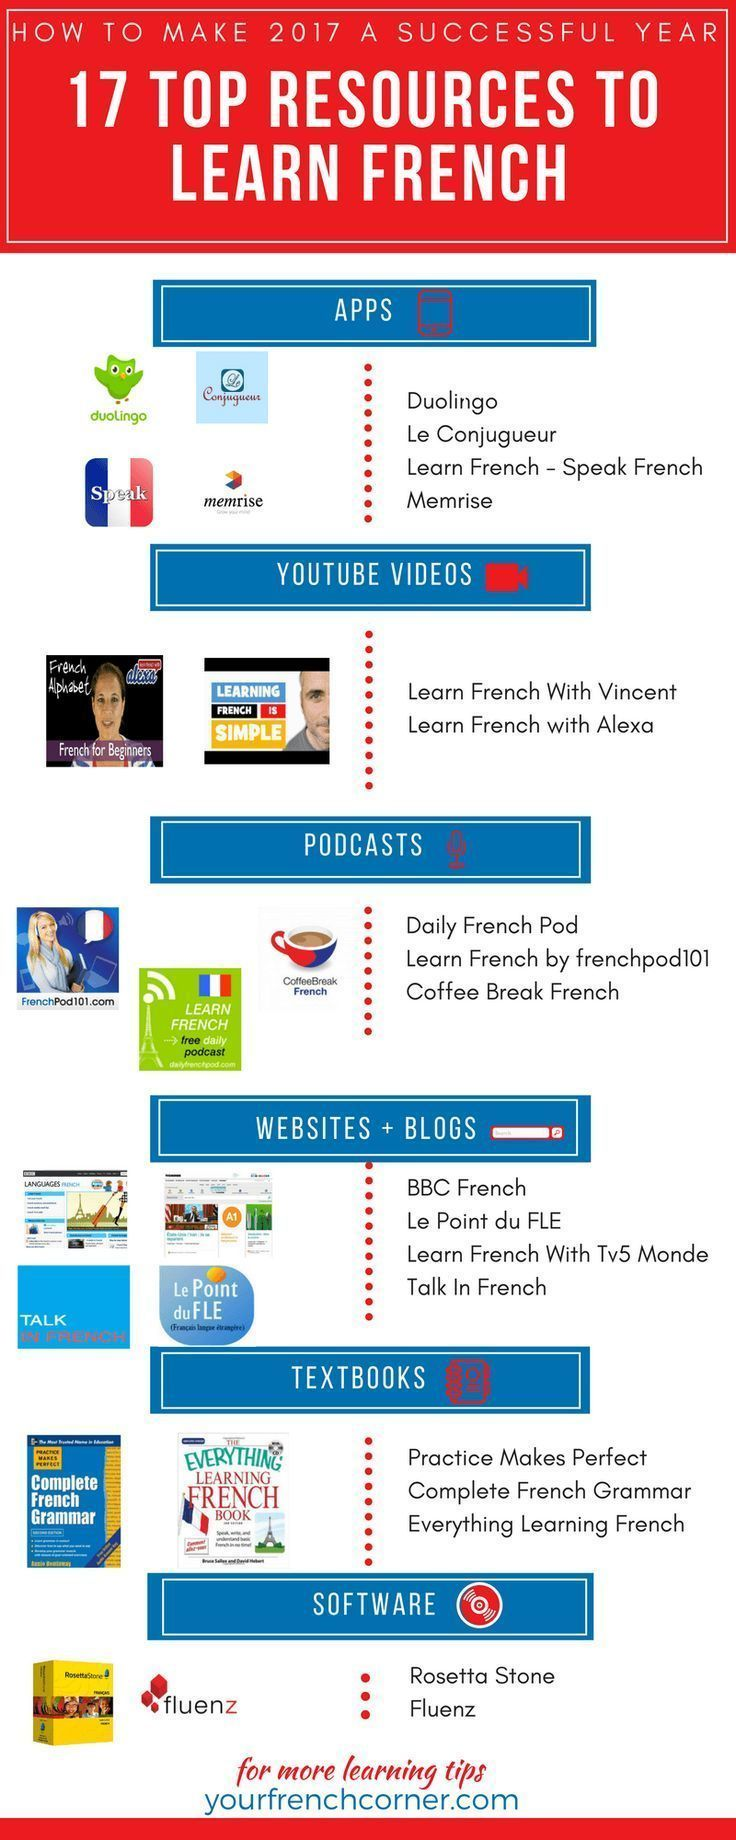 How to make 2017 a successful year 17 top resources to help you how to make 2017 a successful year 17 top resources to help you learn french learning french learning and free fandeluxe Image collections